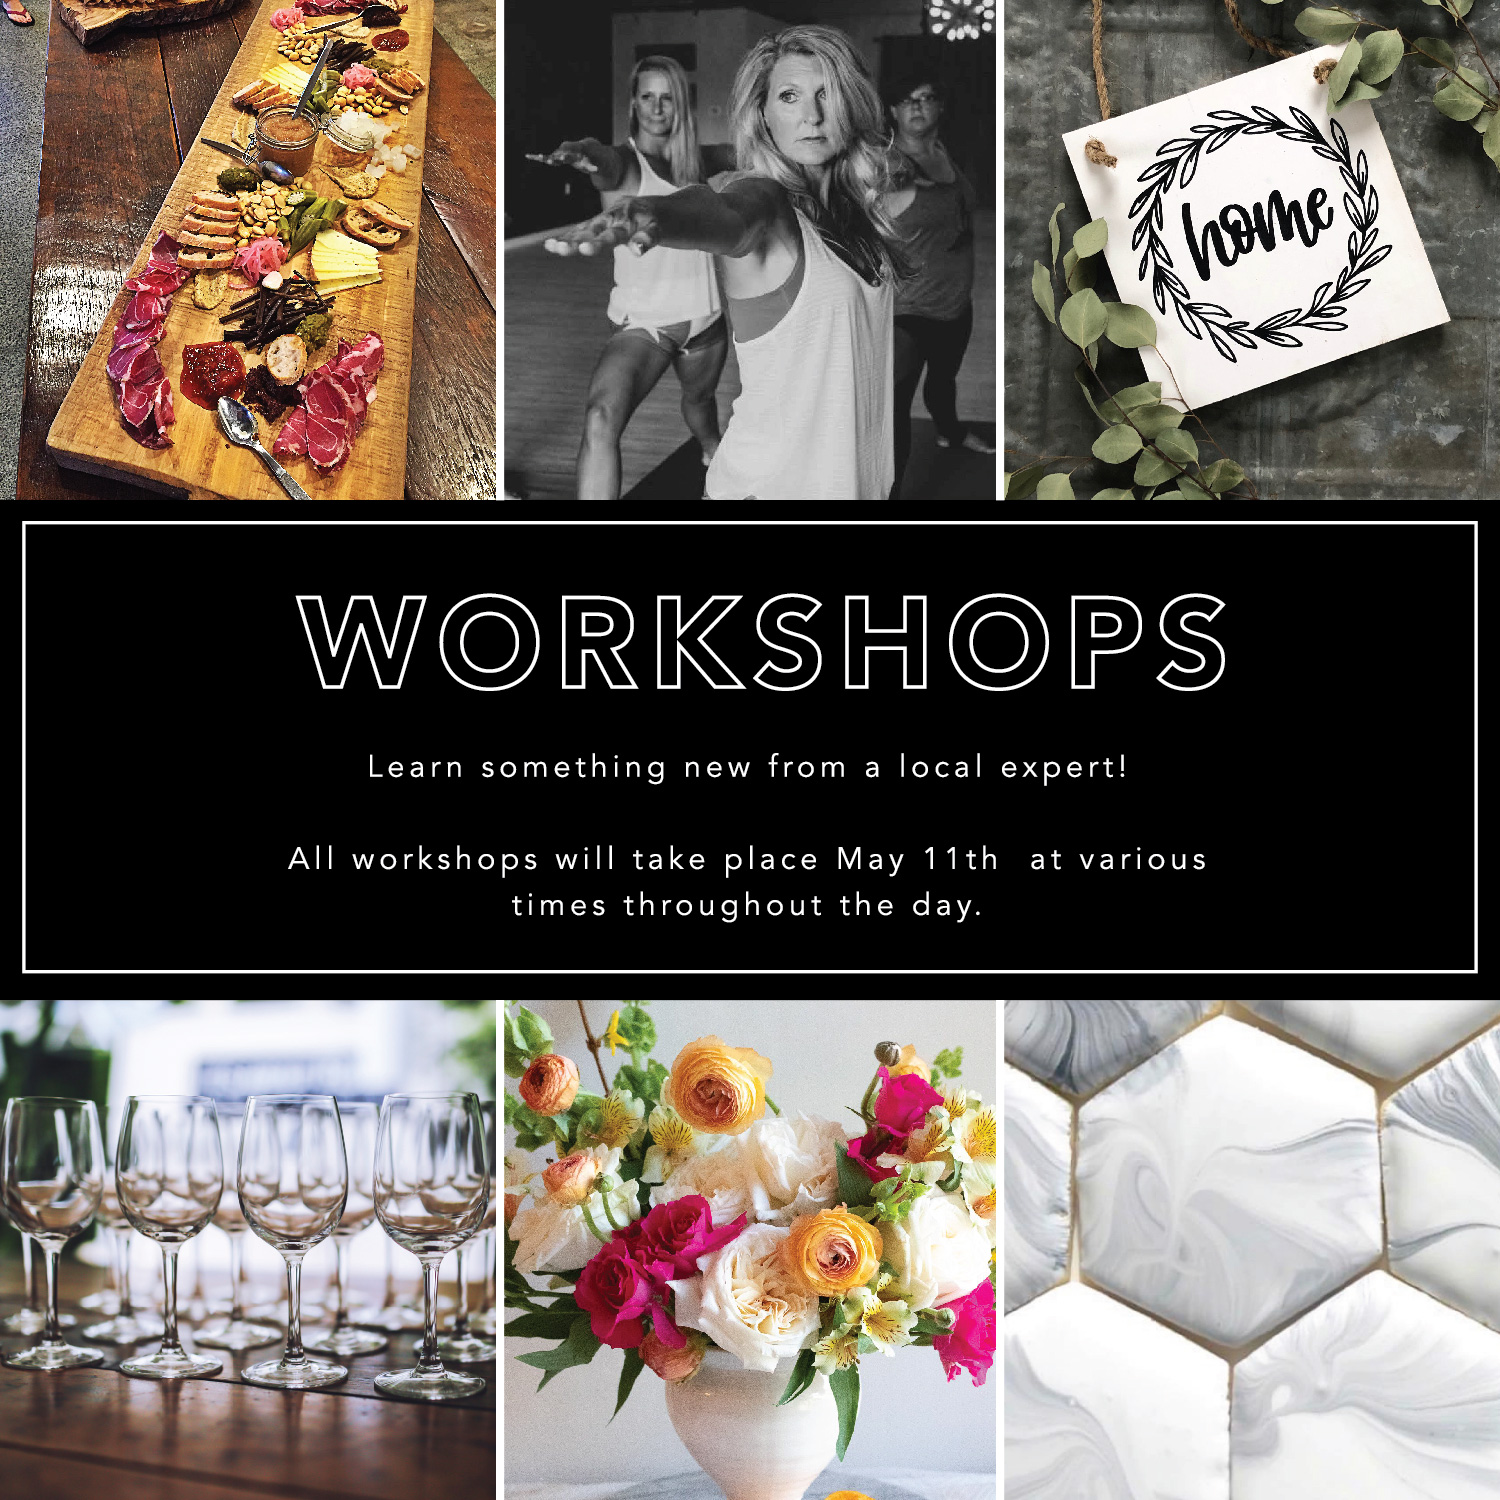 Workshops - Learn something new from a local expert…all workshops will take place May 11th at various times throughout the day.